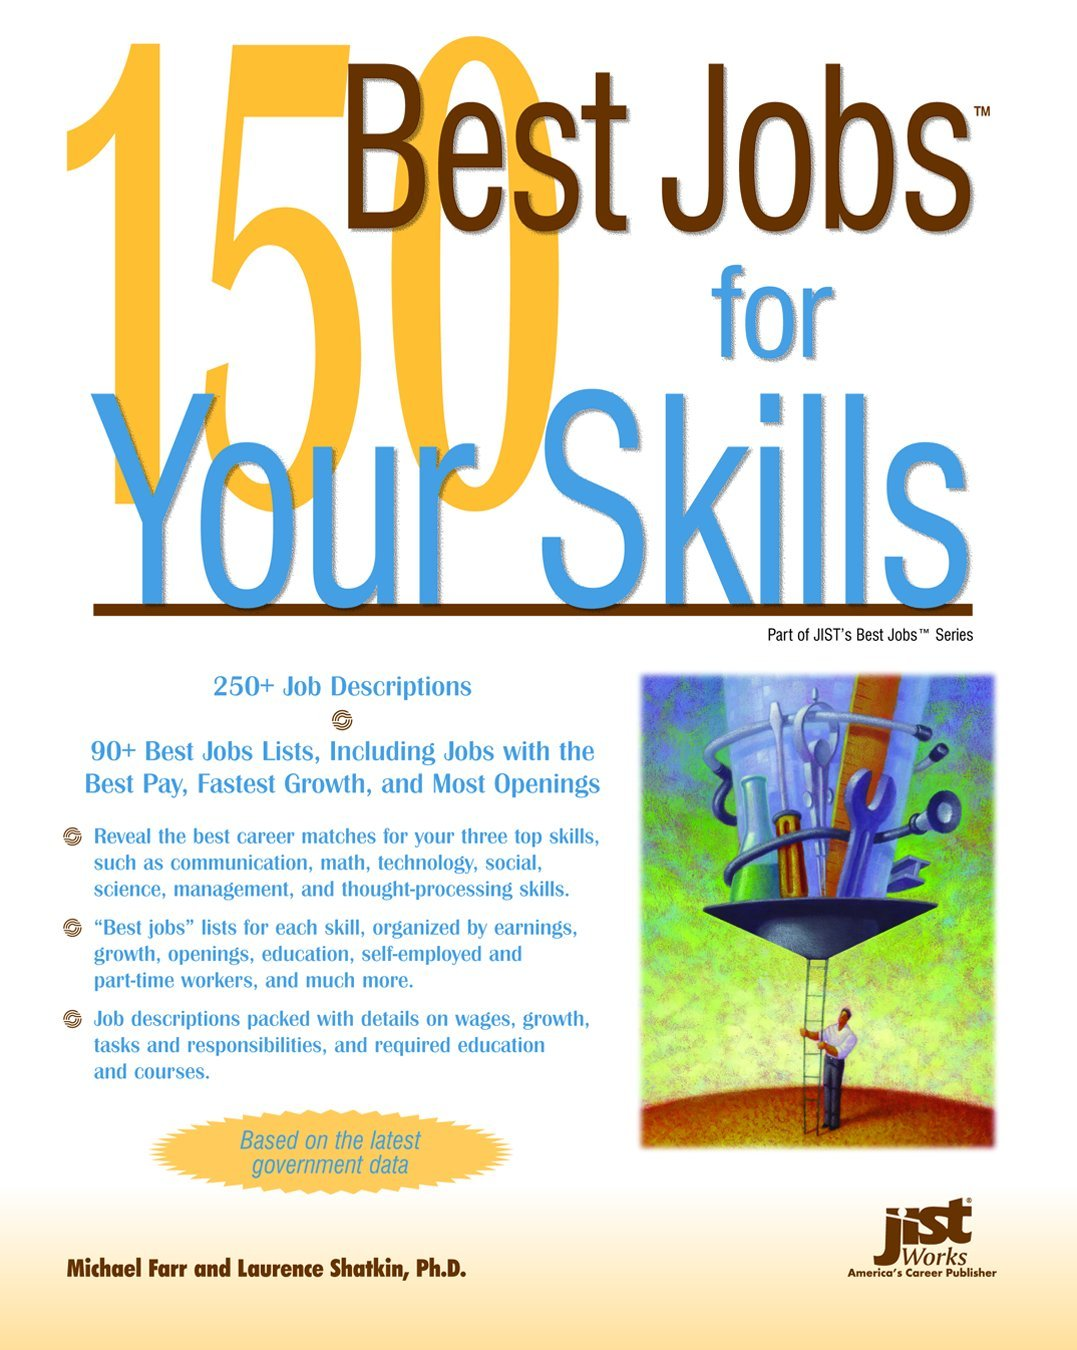 150 best jobs for your skills michael farr laurence shatkin 150 best jobs for your skills michael farr laurence shatkin 9781593574178 amazon com books